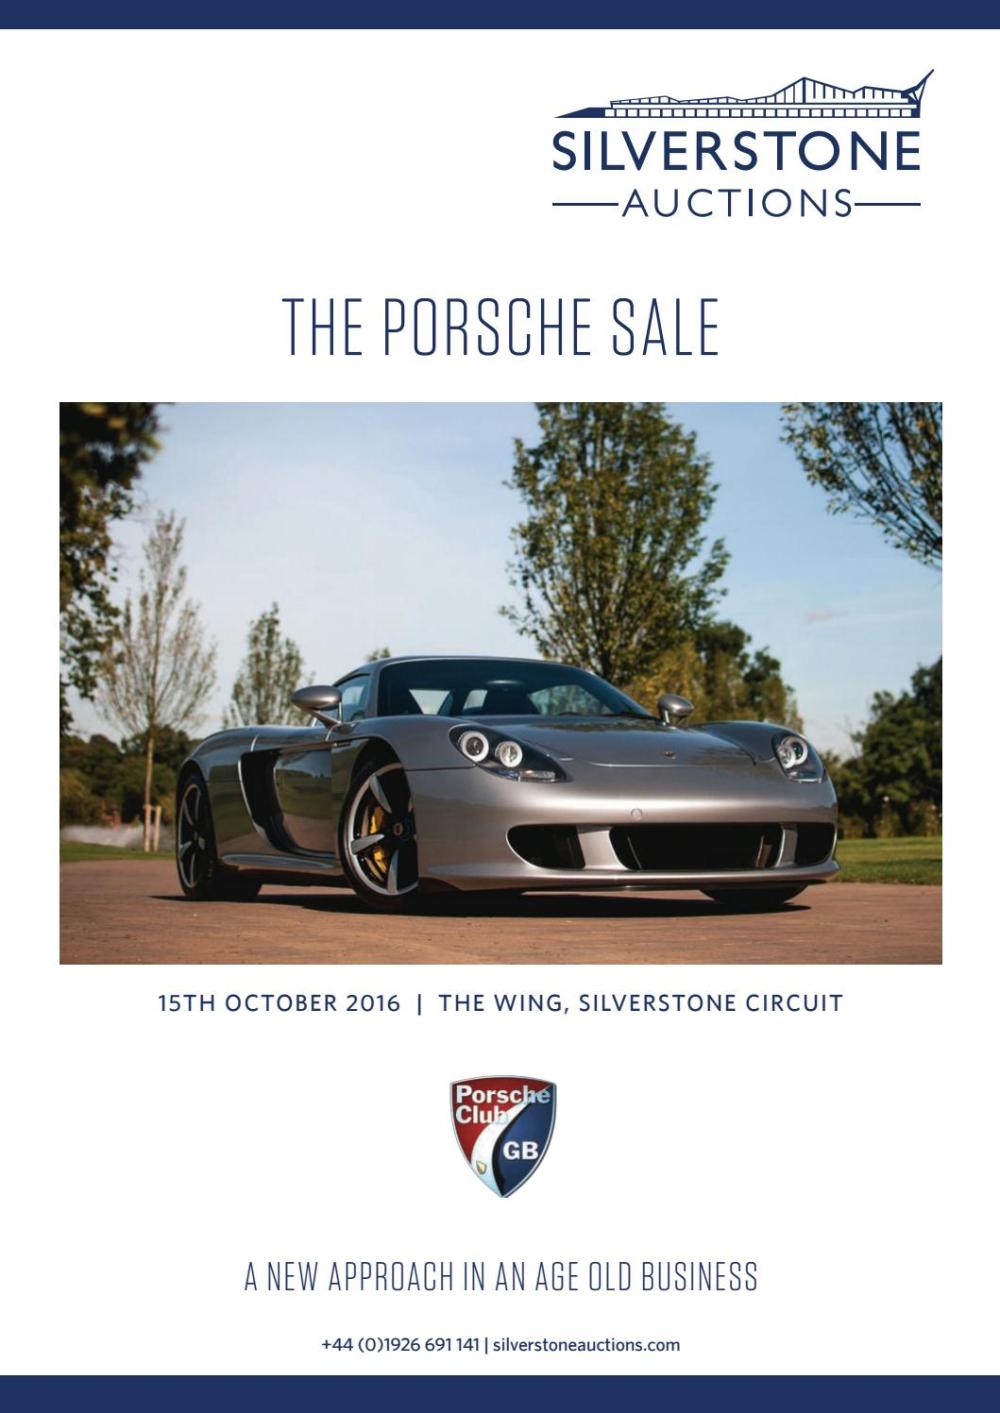 medium resolution of silverstone auctions the porsche sale 15th october 2016 by silverstone auctions issuu